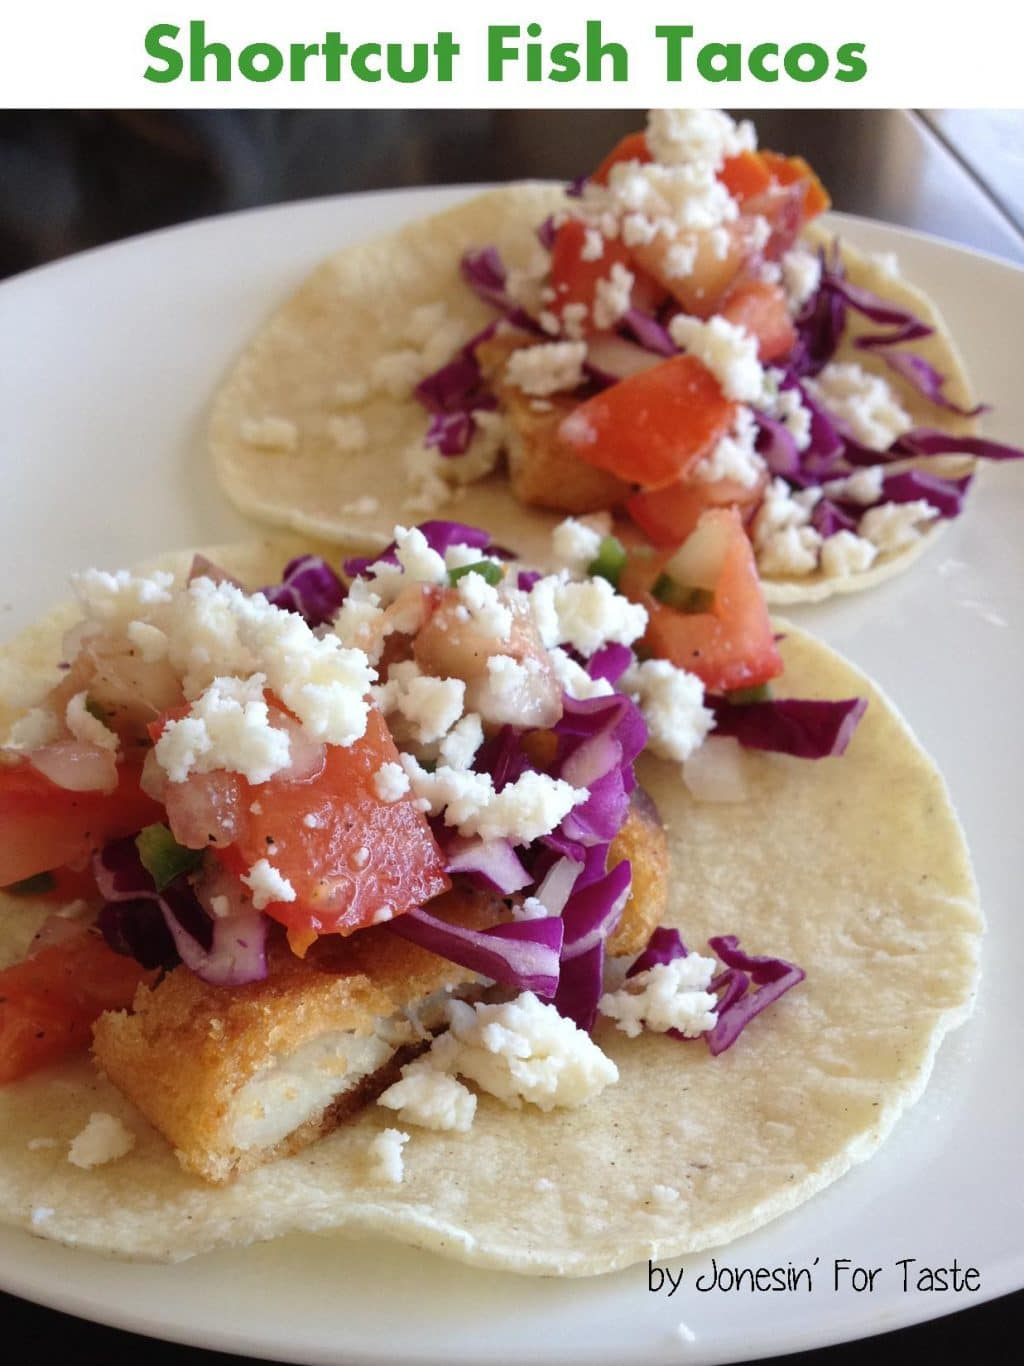 Semi-homemade fish tacos made using frozen breaded fish fillets topped with peach salsa for a quick and easy dinner.